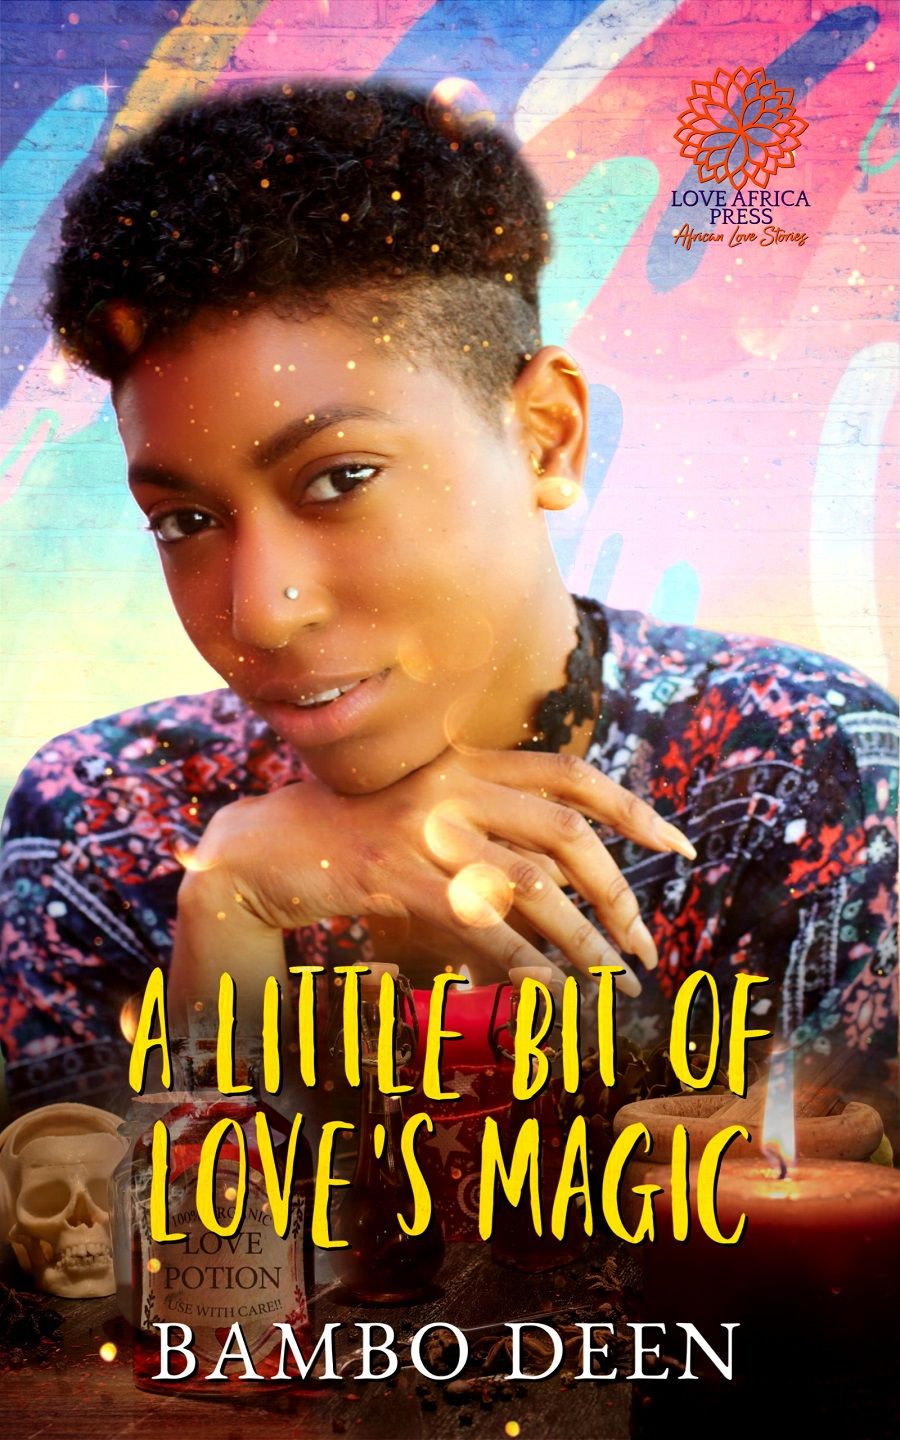 A Little Bit of Love's Magic by Bambo Deen